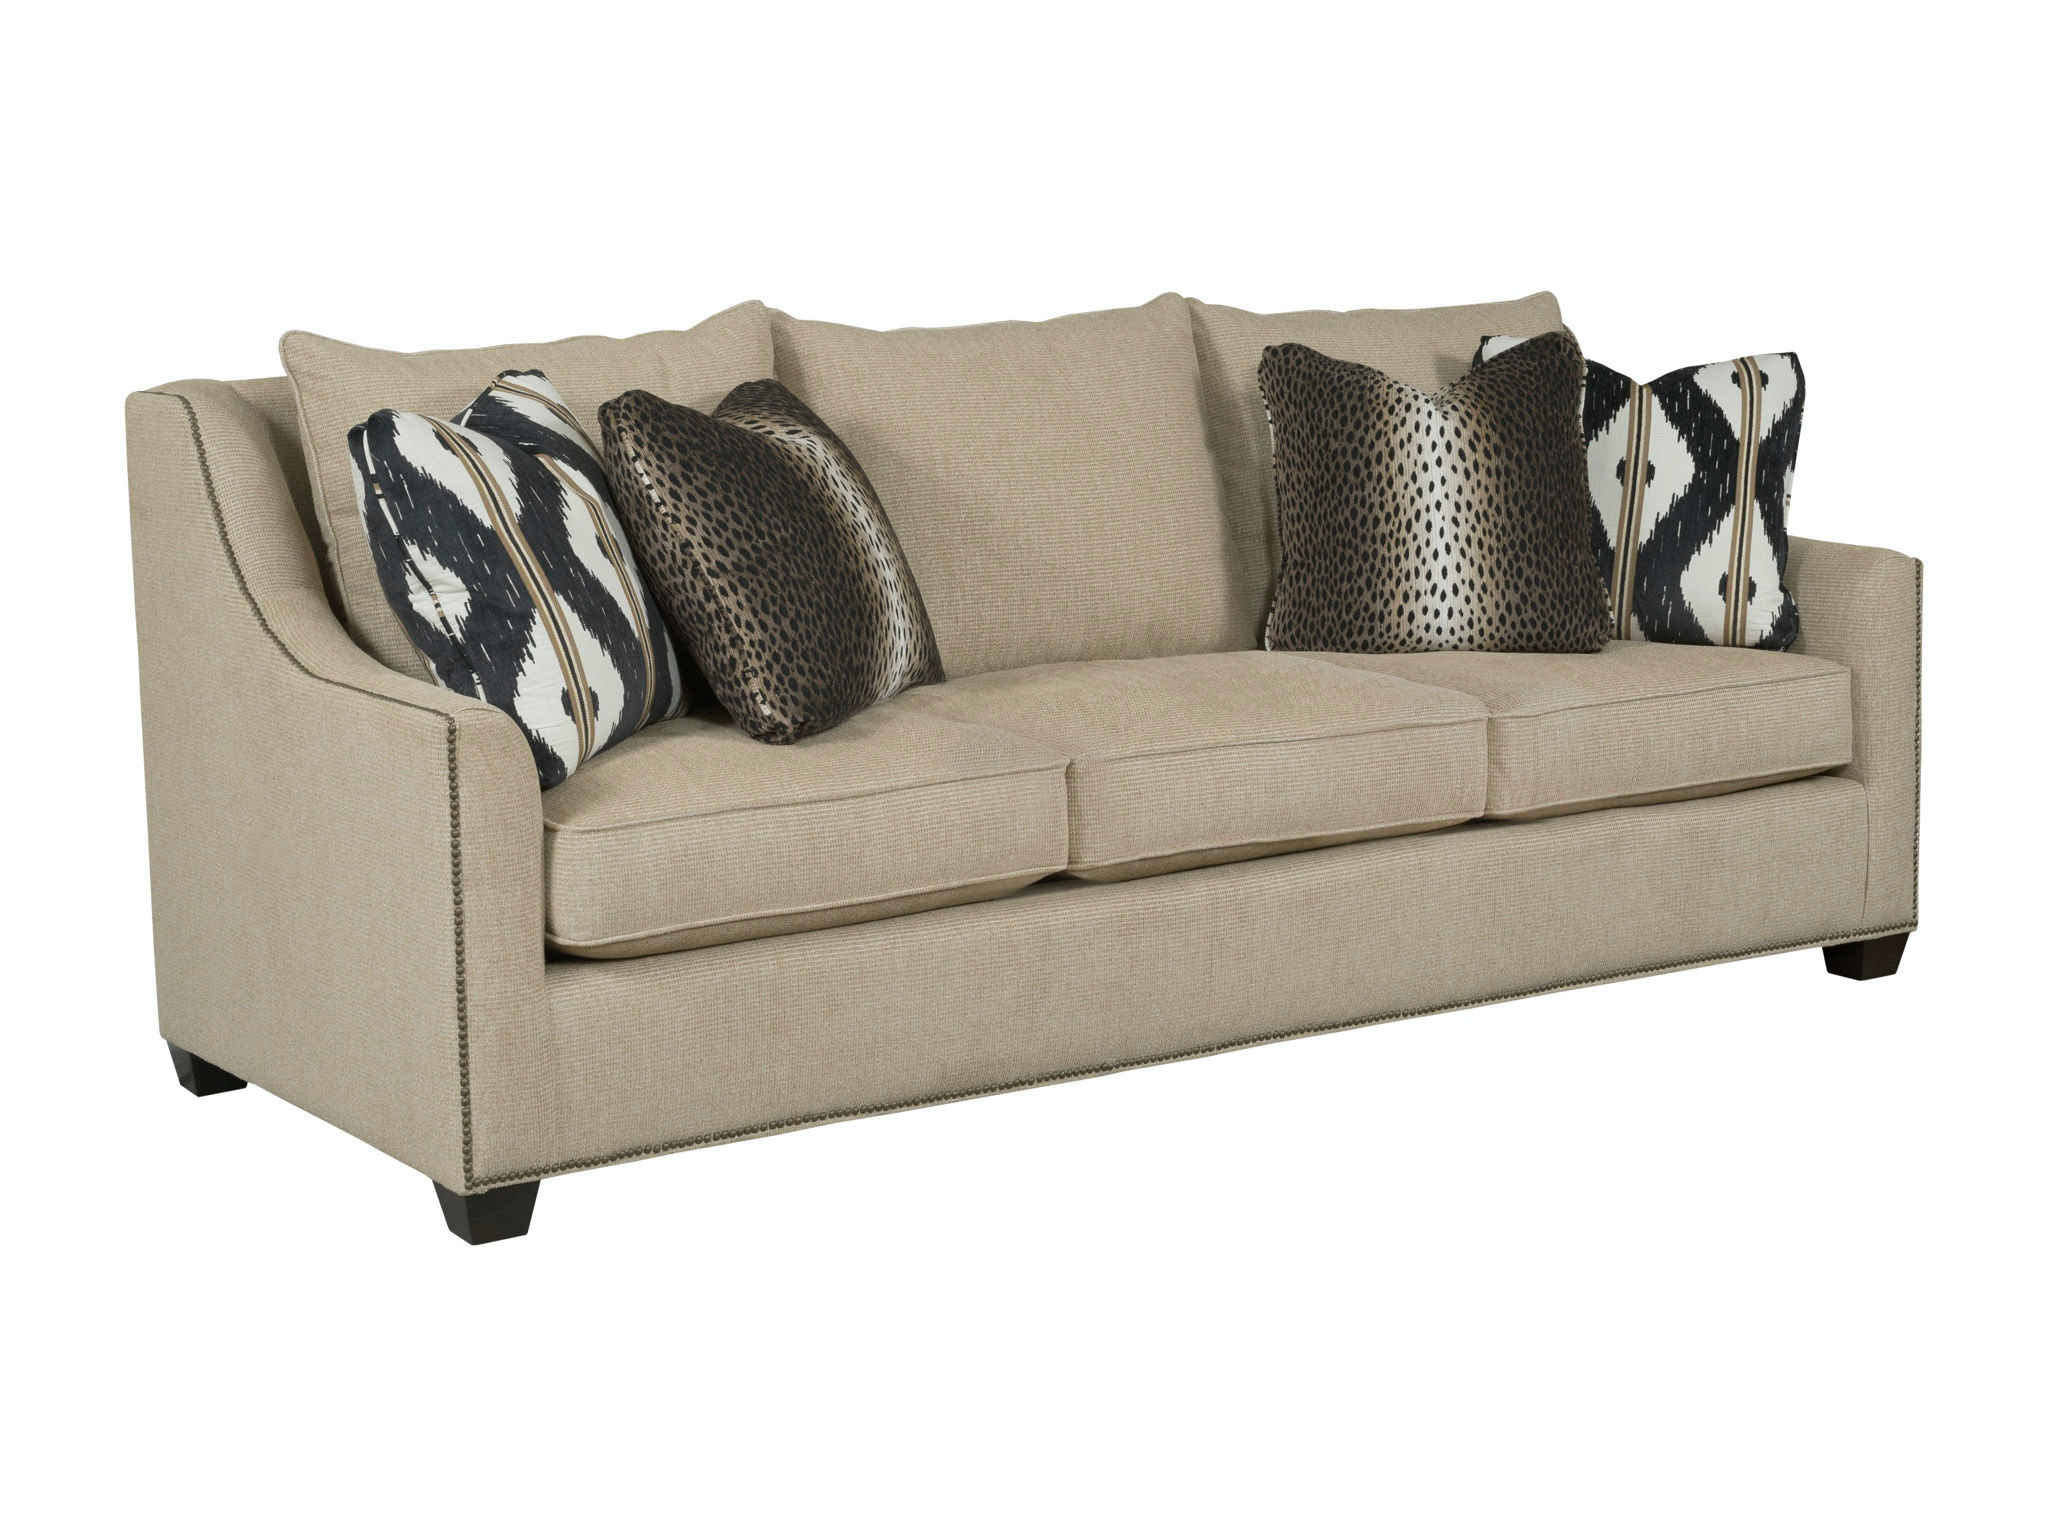 Kincaid Furniture Edison Sofa 303 76